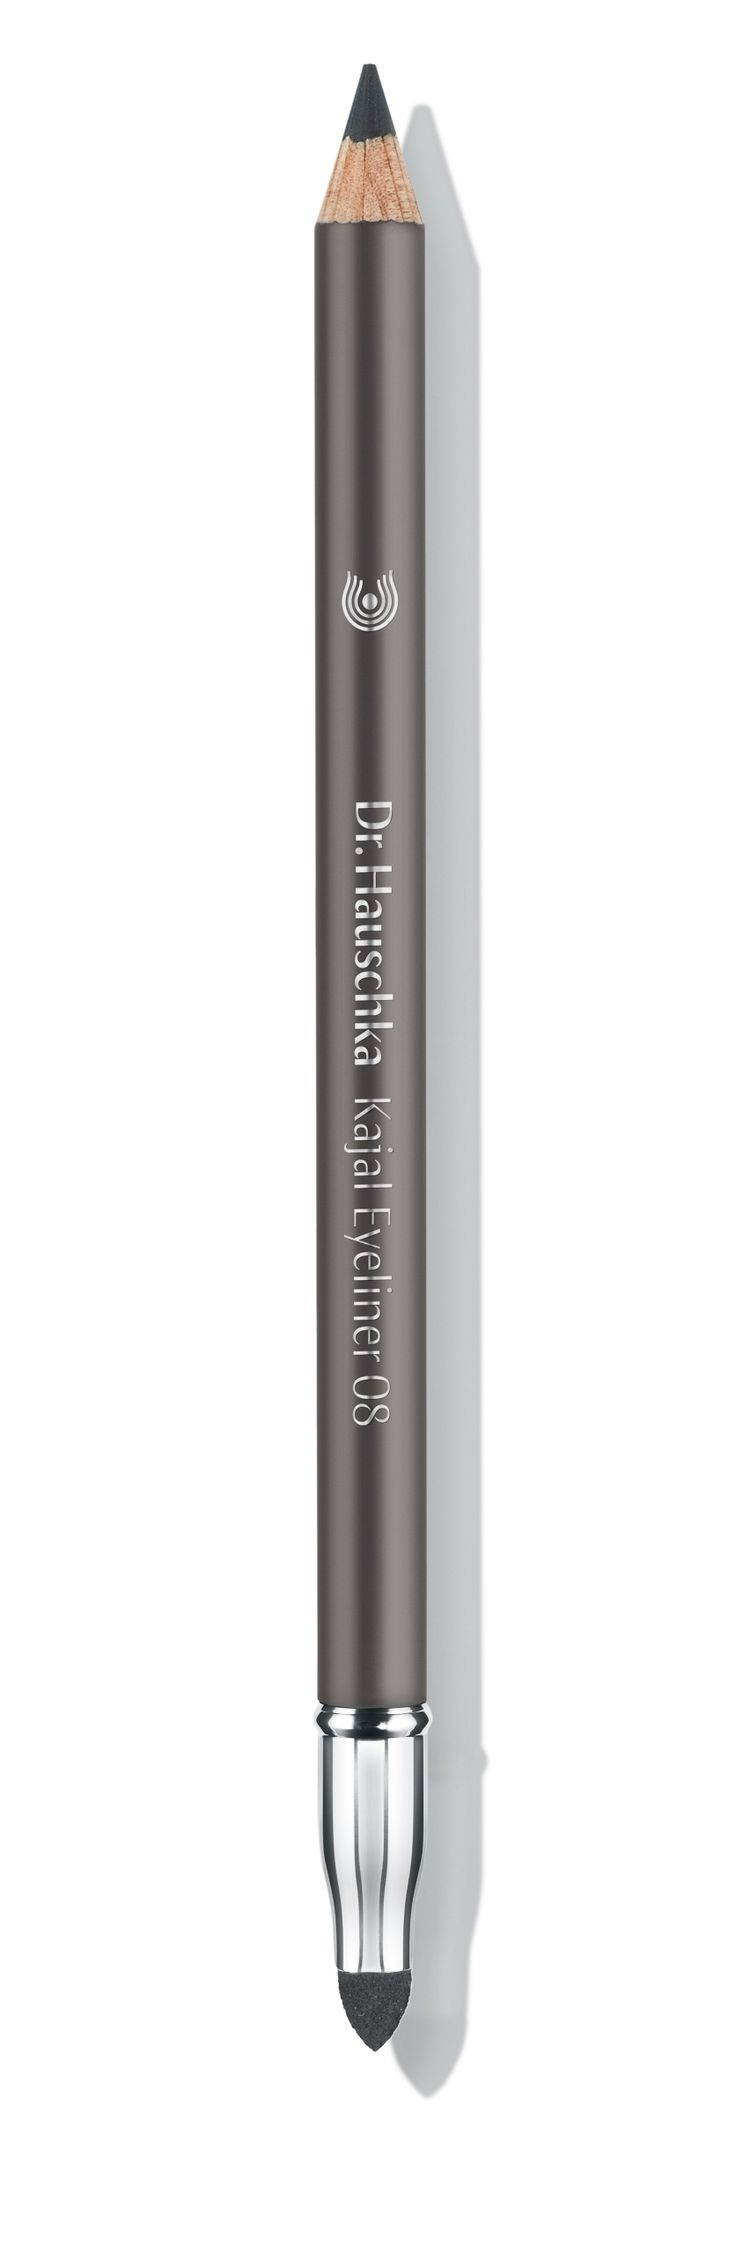 New! Spectacular comeback - Kajal Eyeliner 08. The look is an unexpected rediscovery that feels instantly familiar.